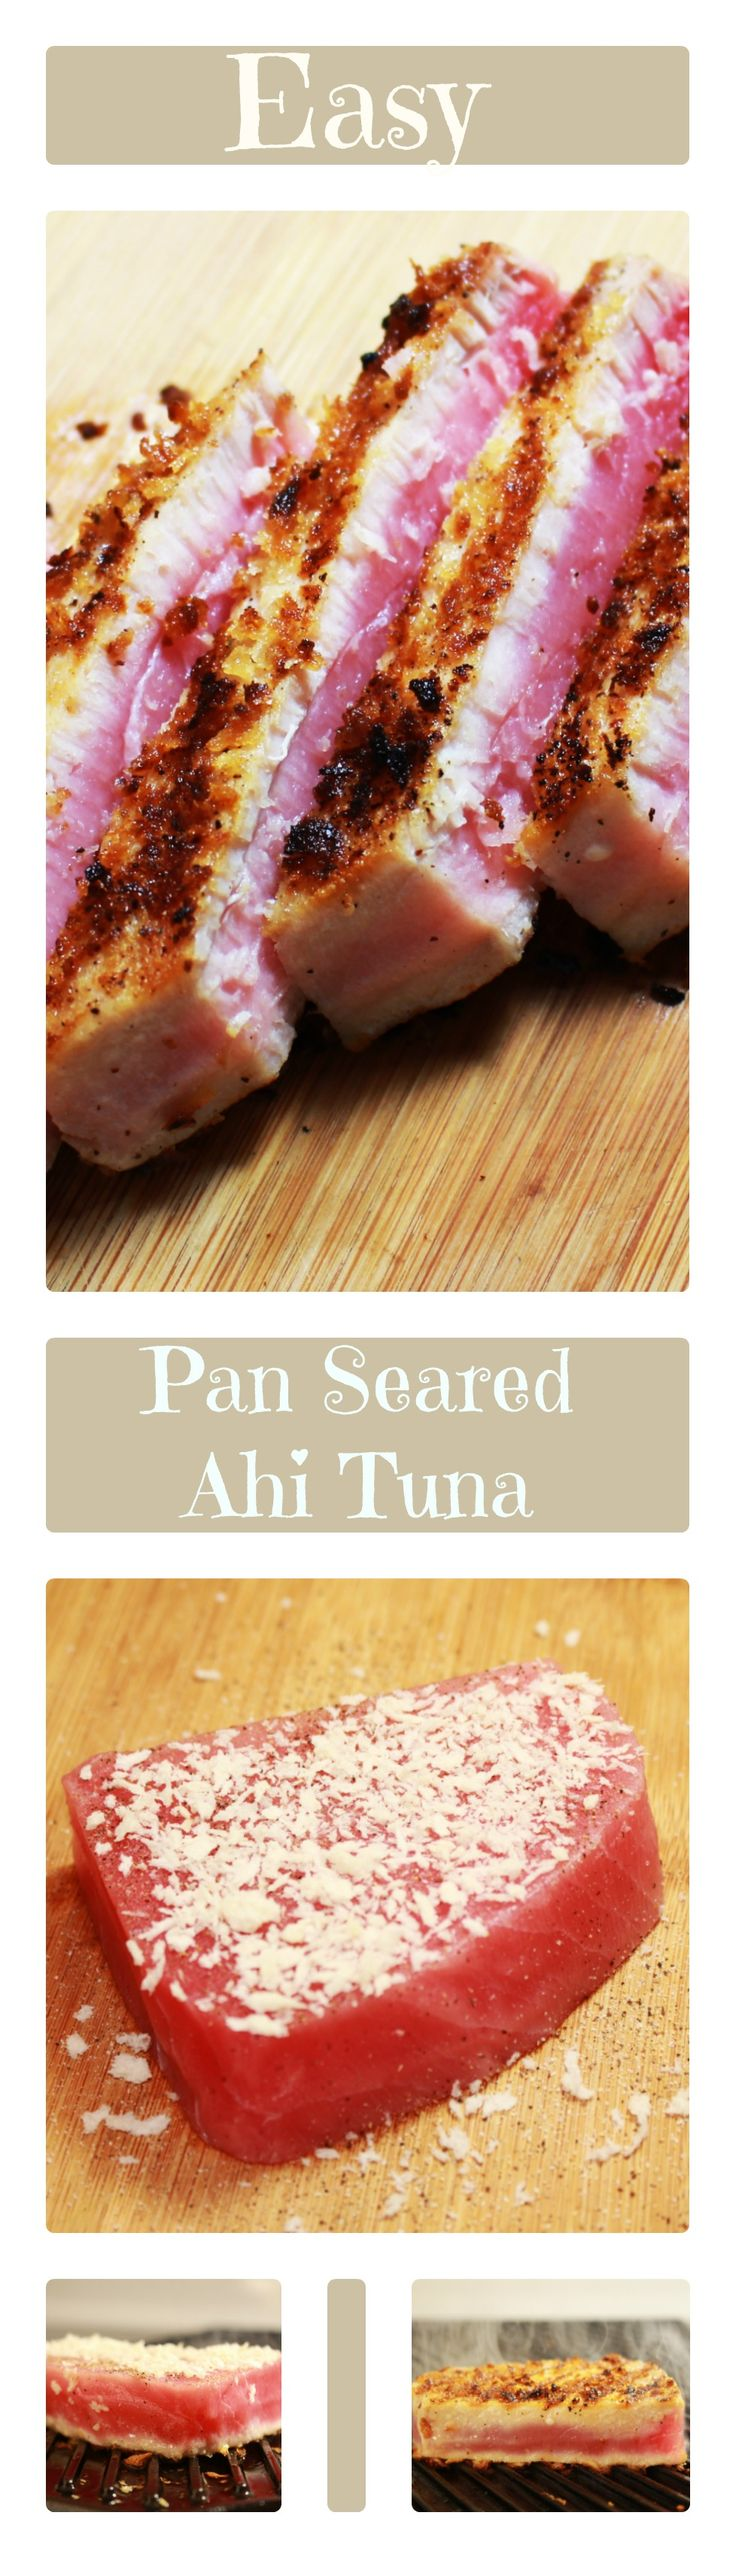 Easy to make Pan Seared Ahi Tuna  |Recipes|Tuna|Seared| Delicious|Clean Eating|